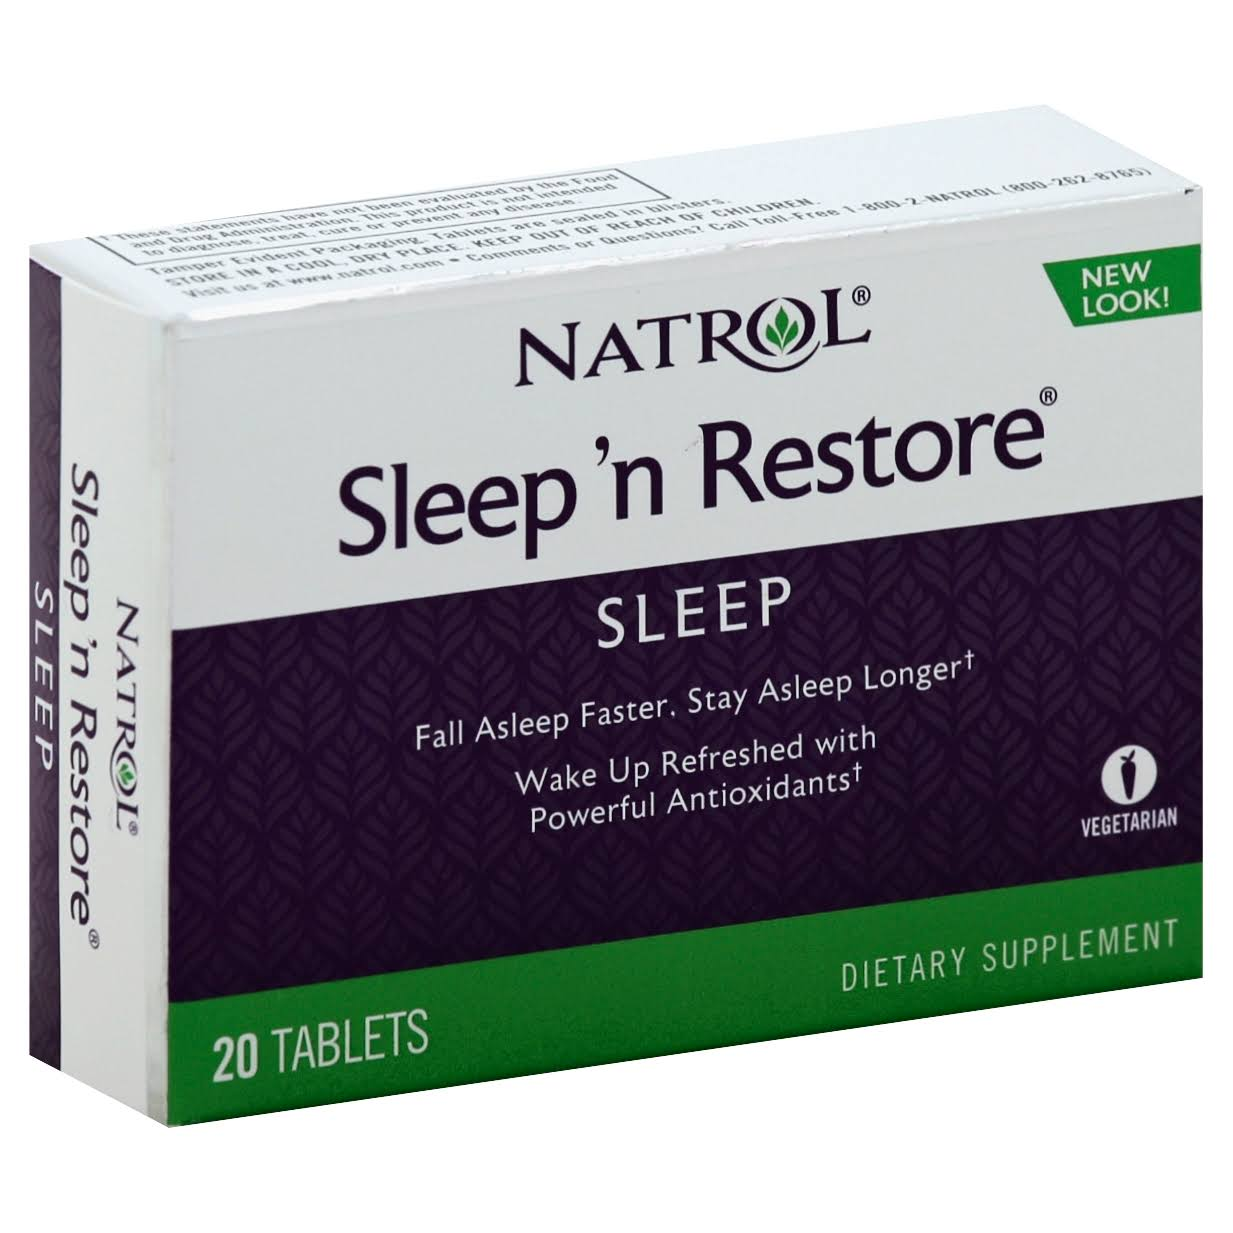 Natrol Sleep 'N Restore Dietary Supplement - 20 tablets